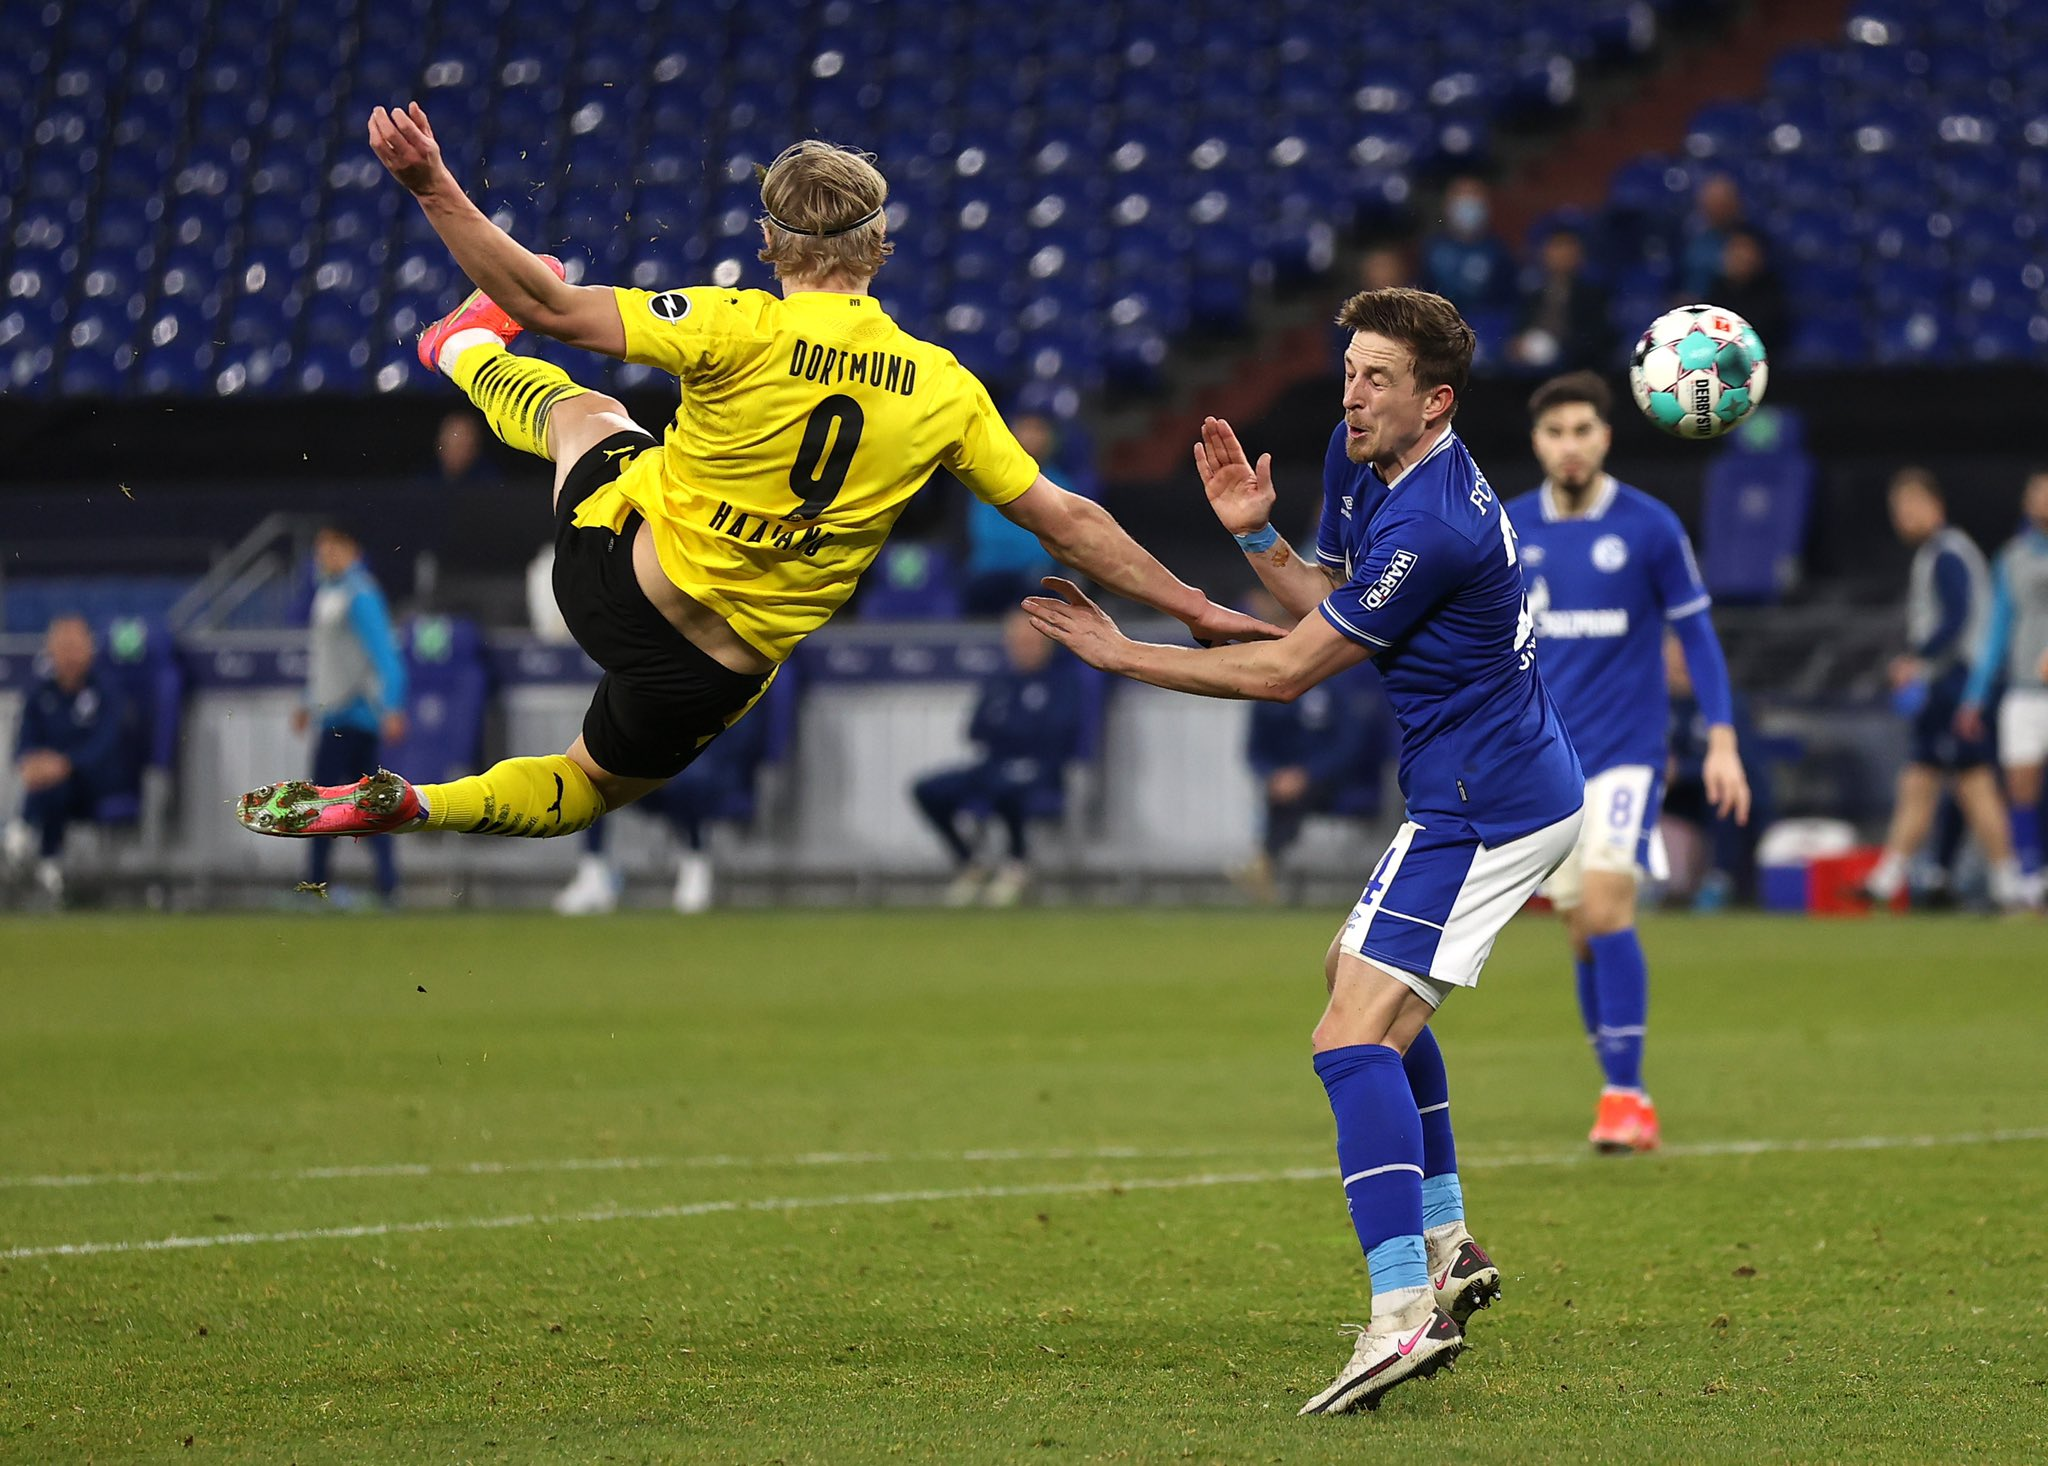 Erling Haaland scored a magnificent volley to inspire Borussia Dortmund to victory last weekend